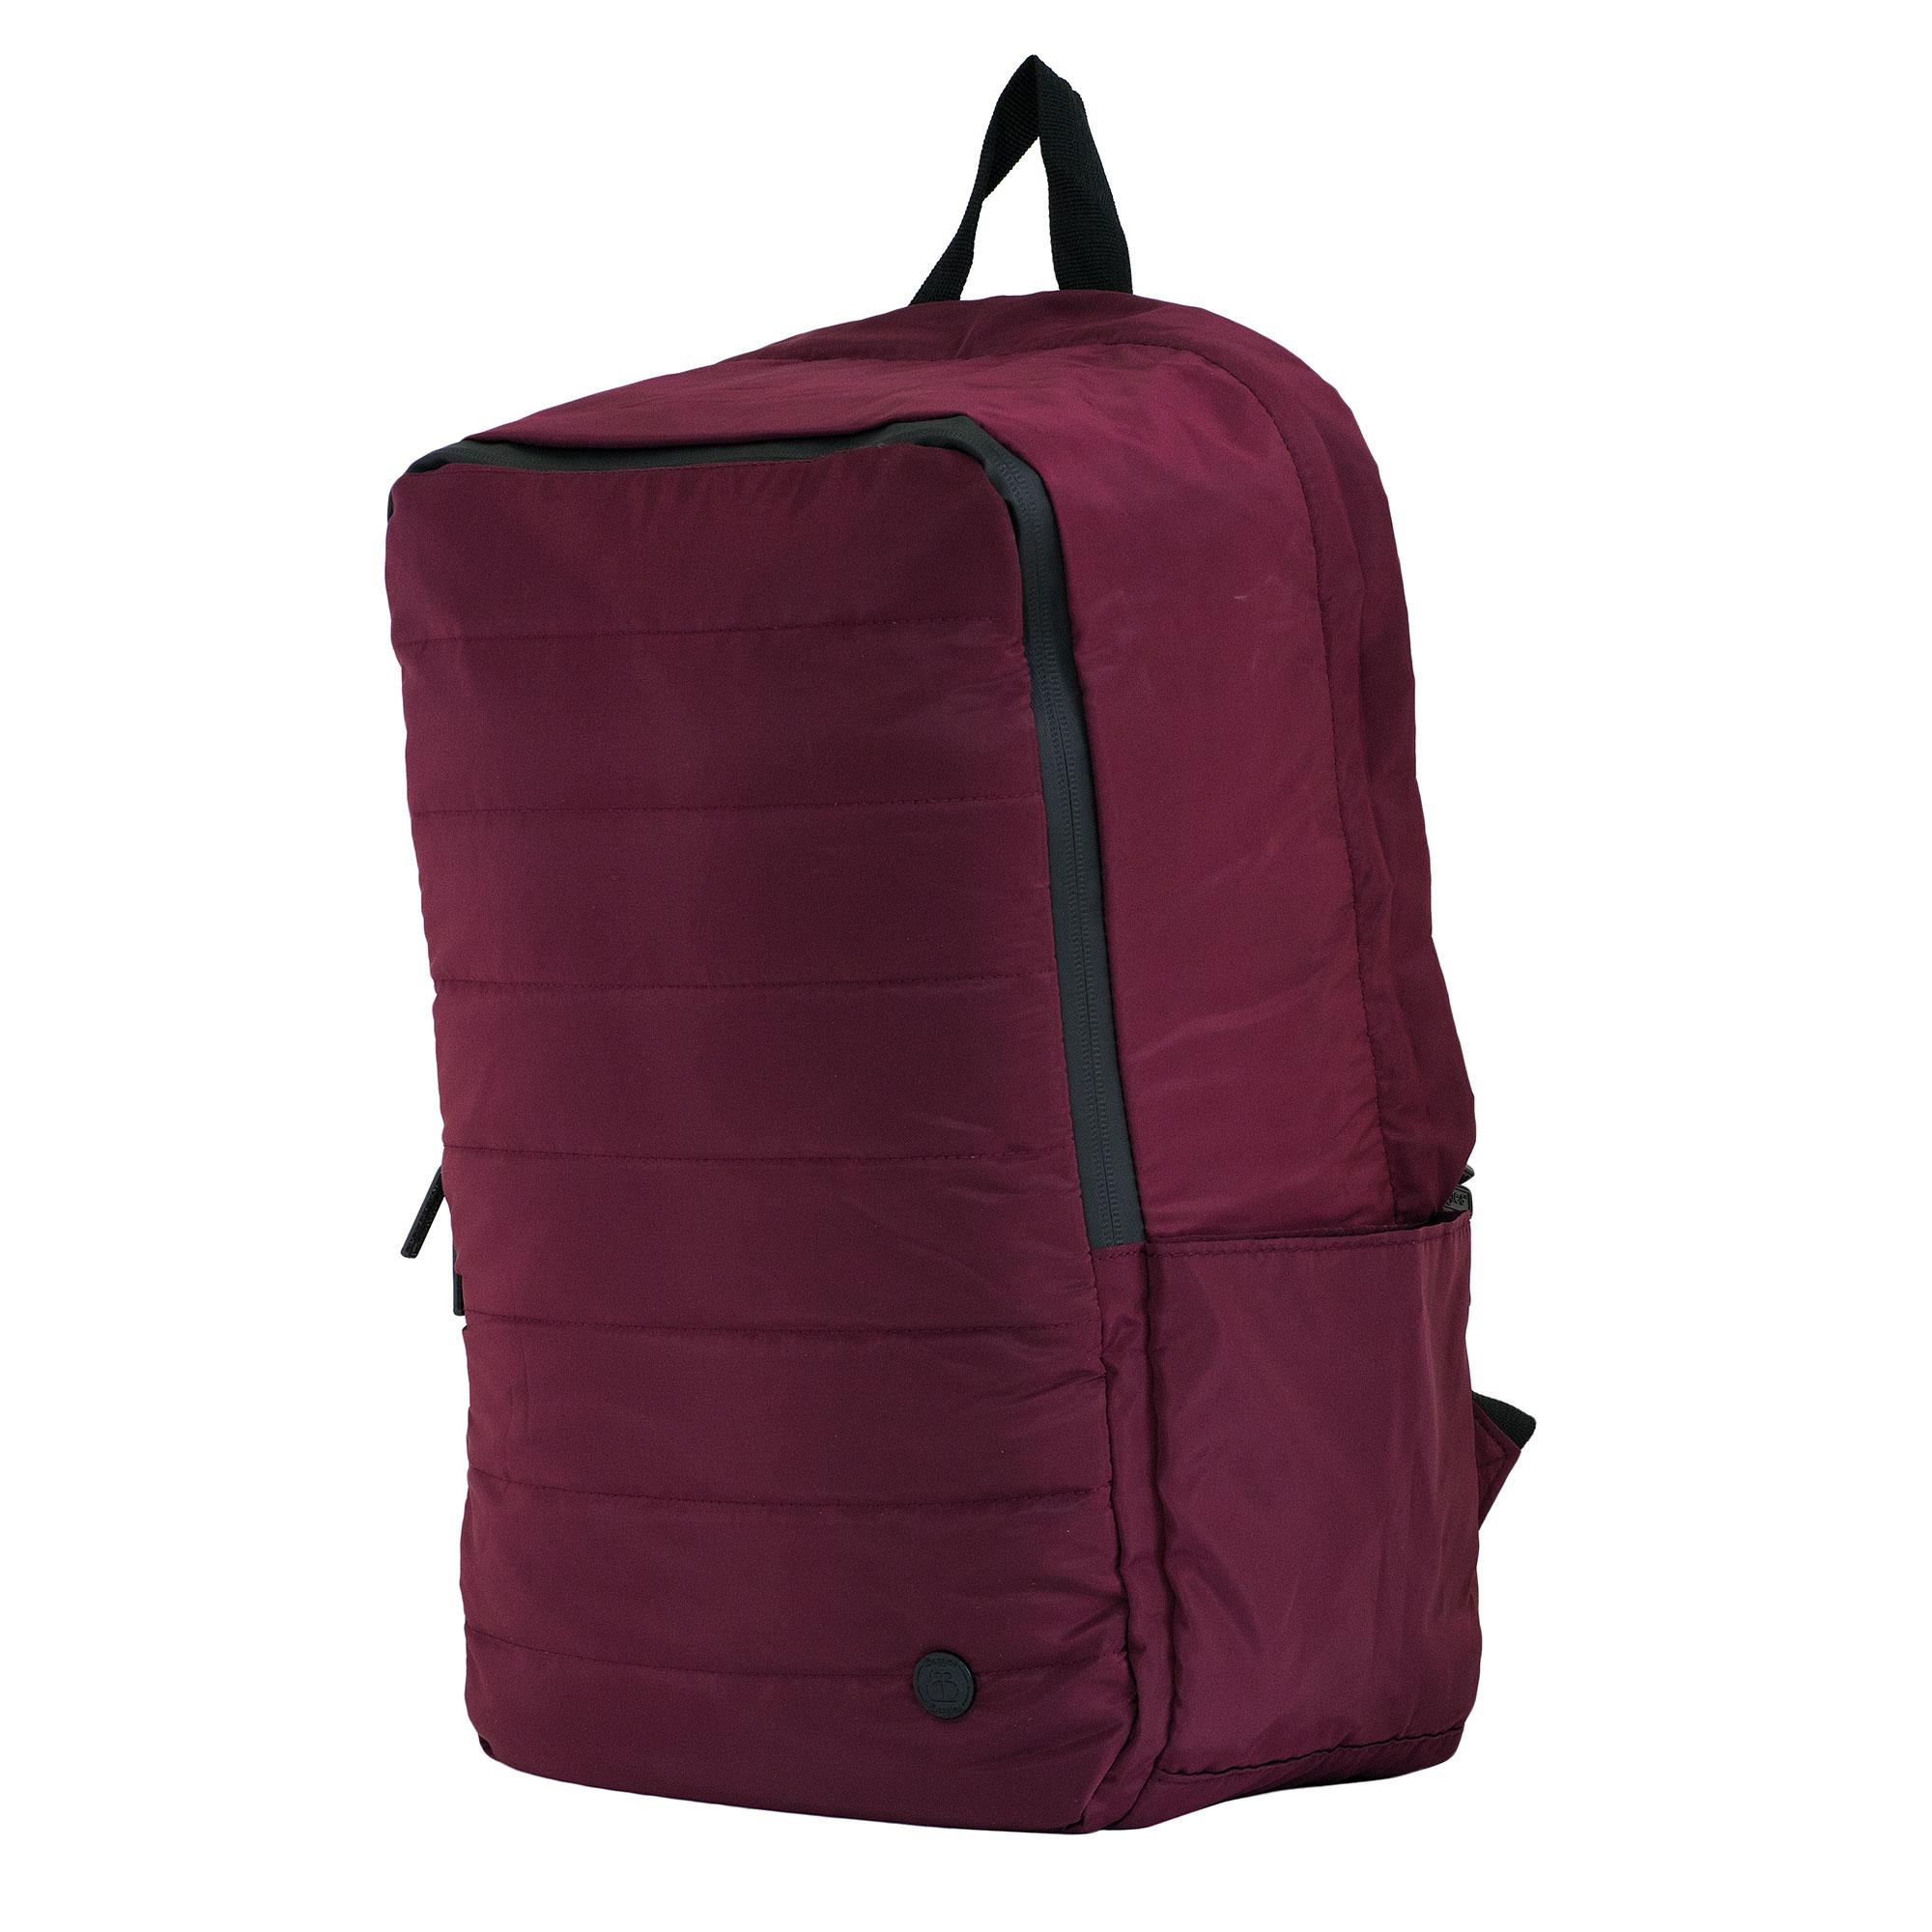 BBAGGIES Secure Quilted Foldable Backpack - Burgundy